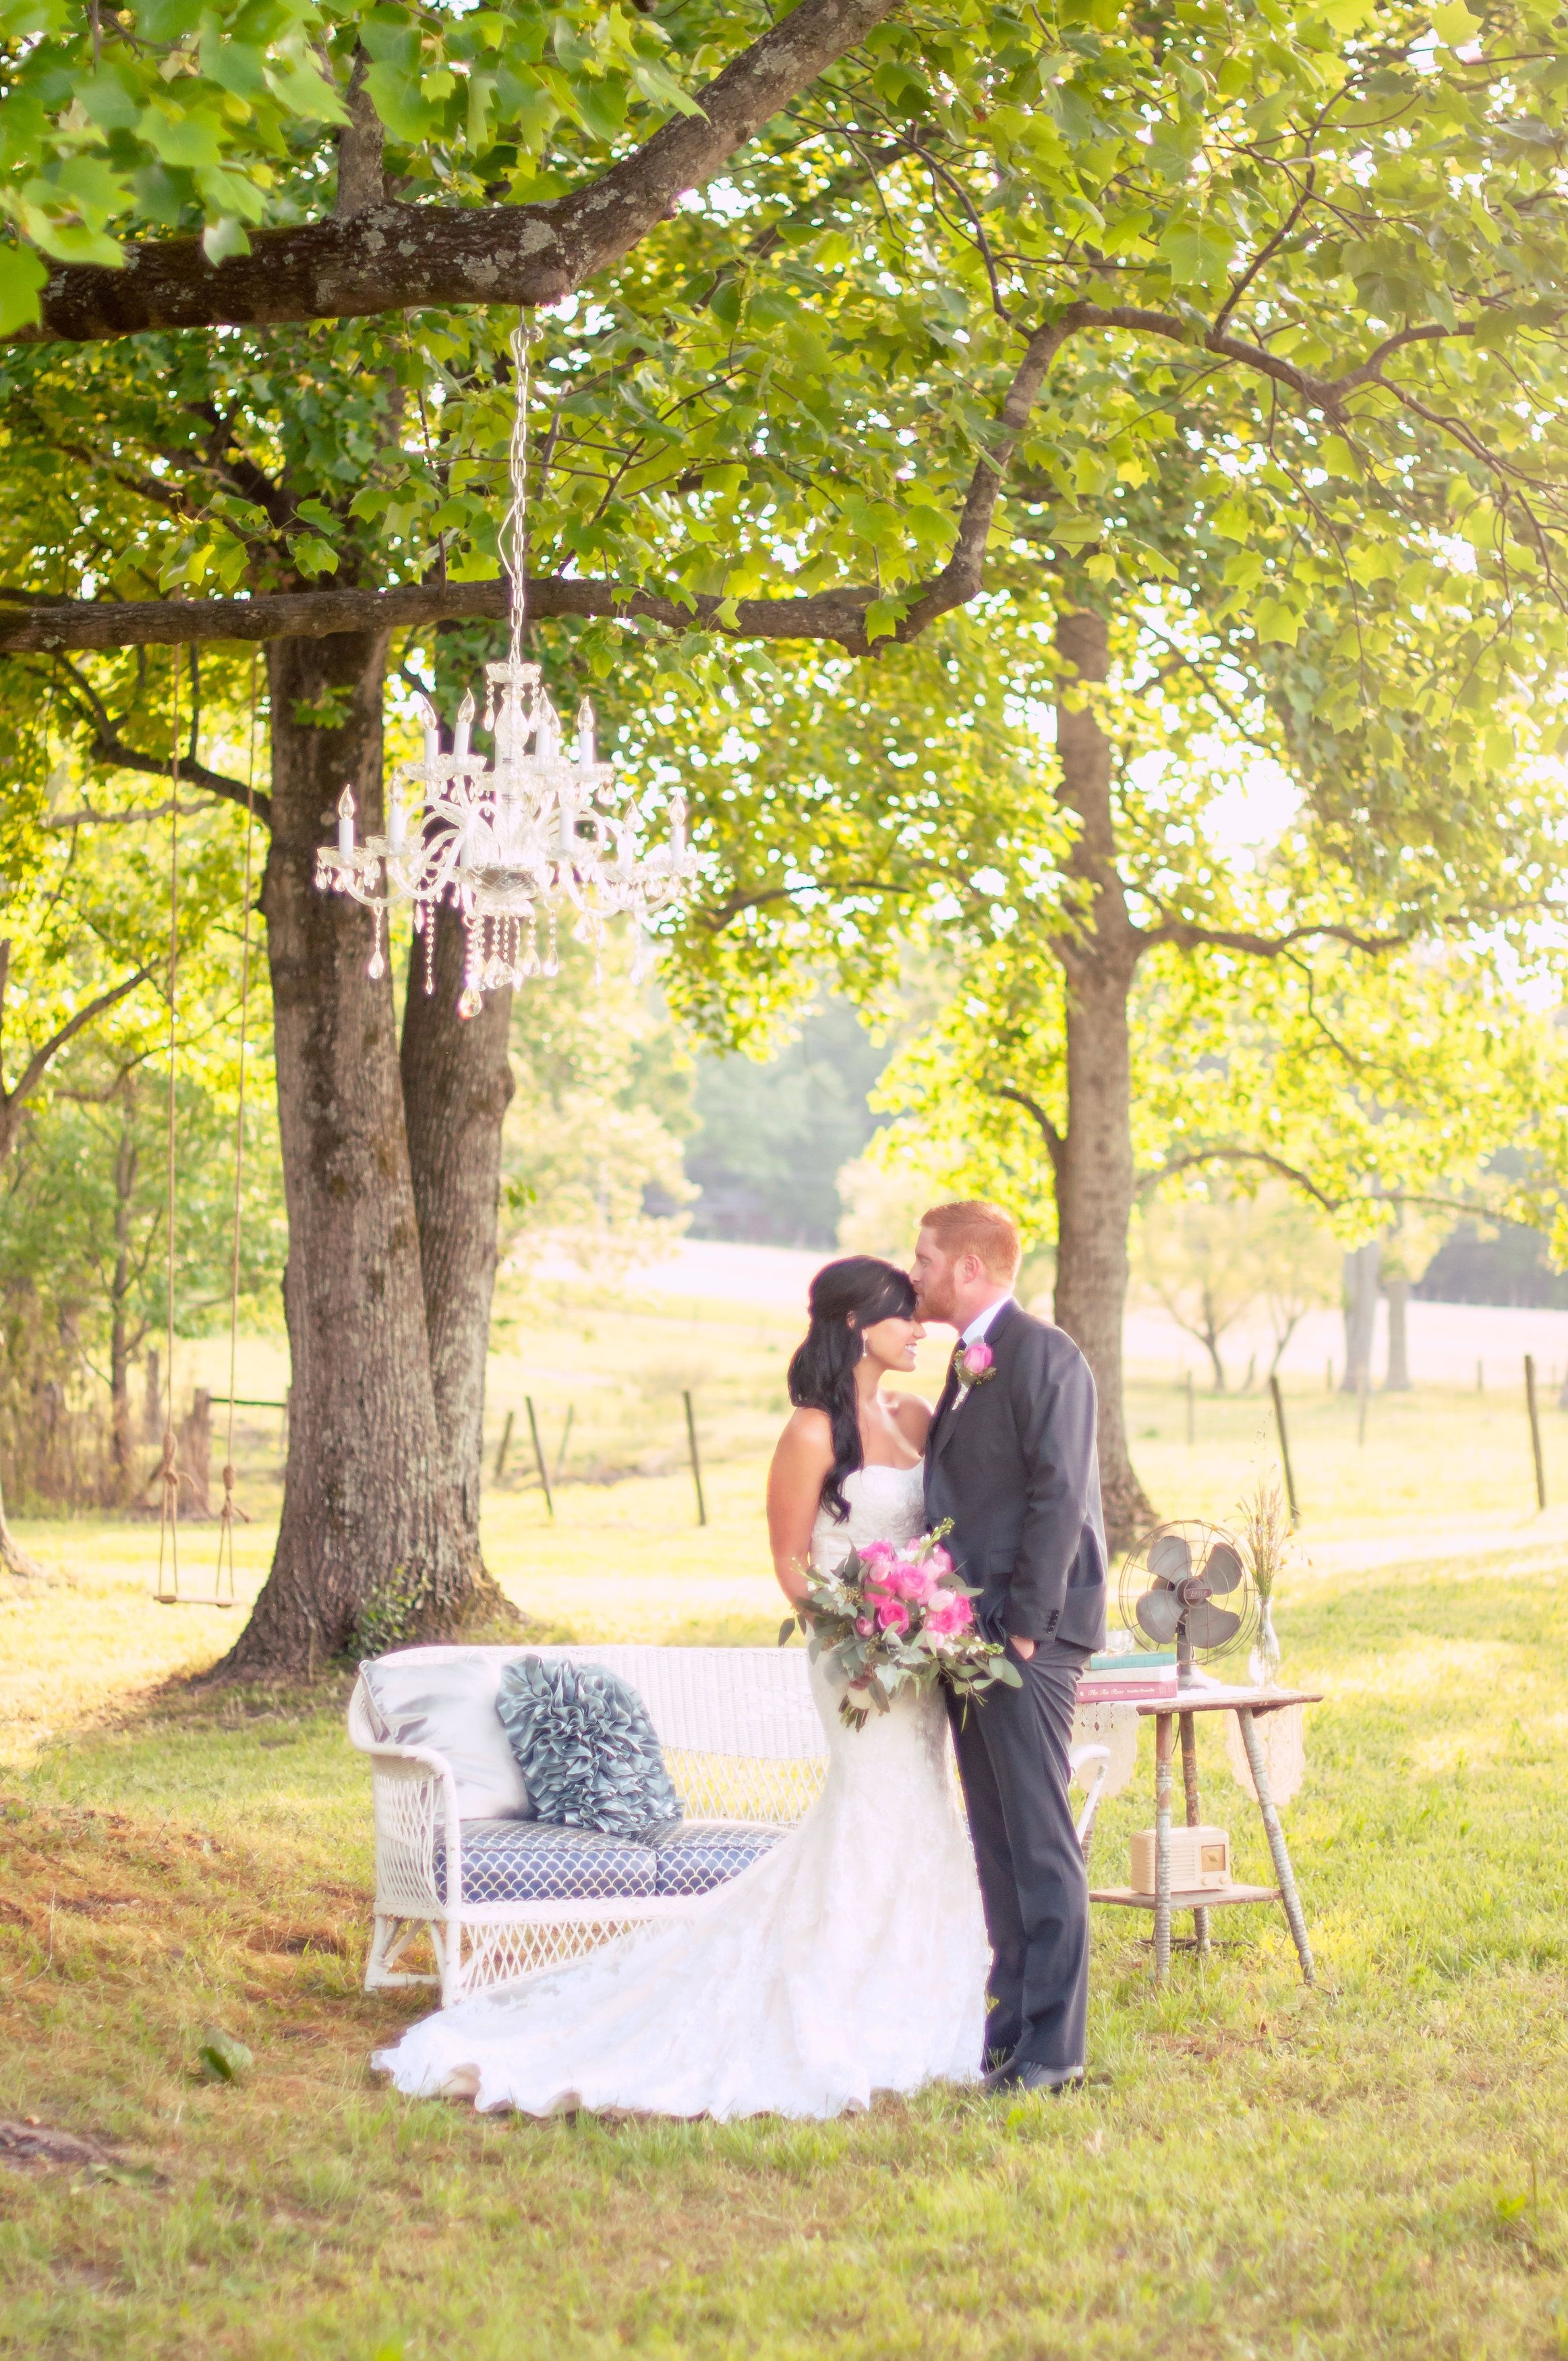 Outdoor Photography Wedding: Wedding Couples Portraits